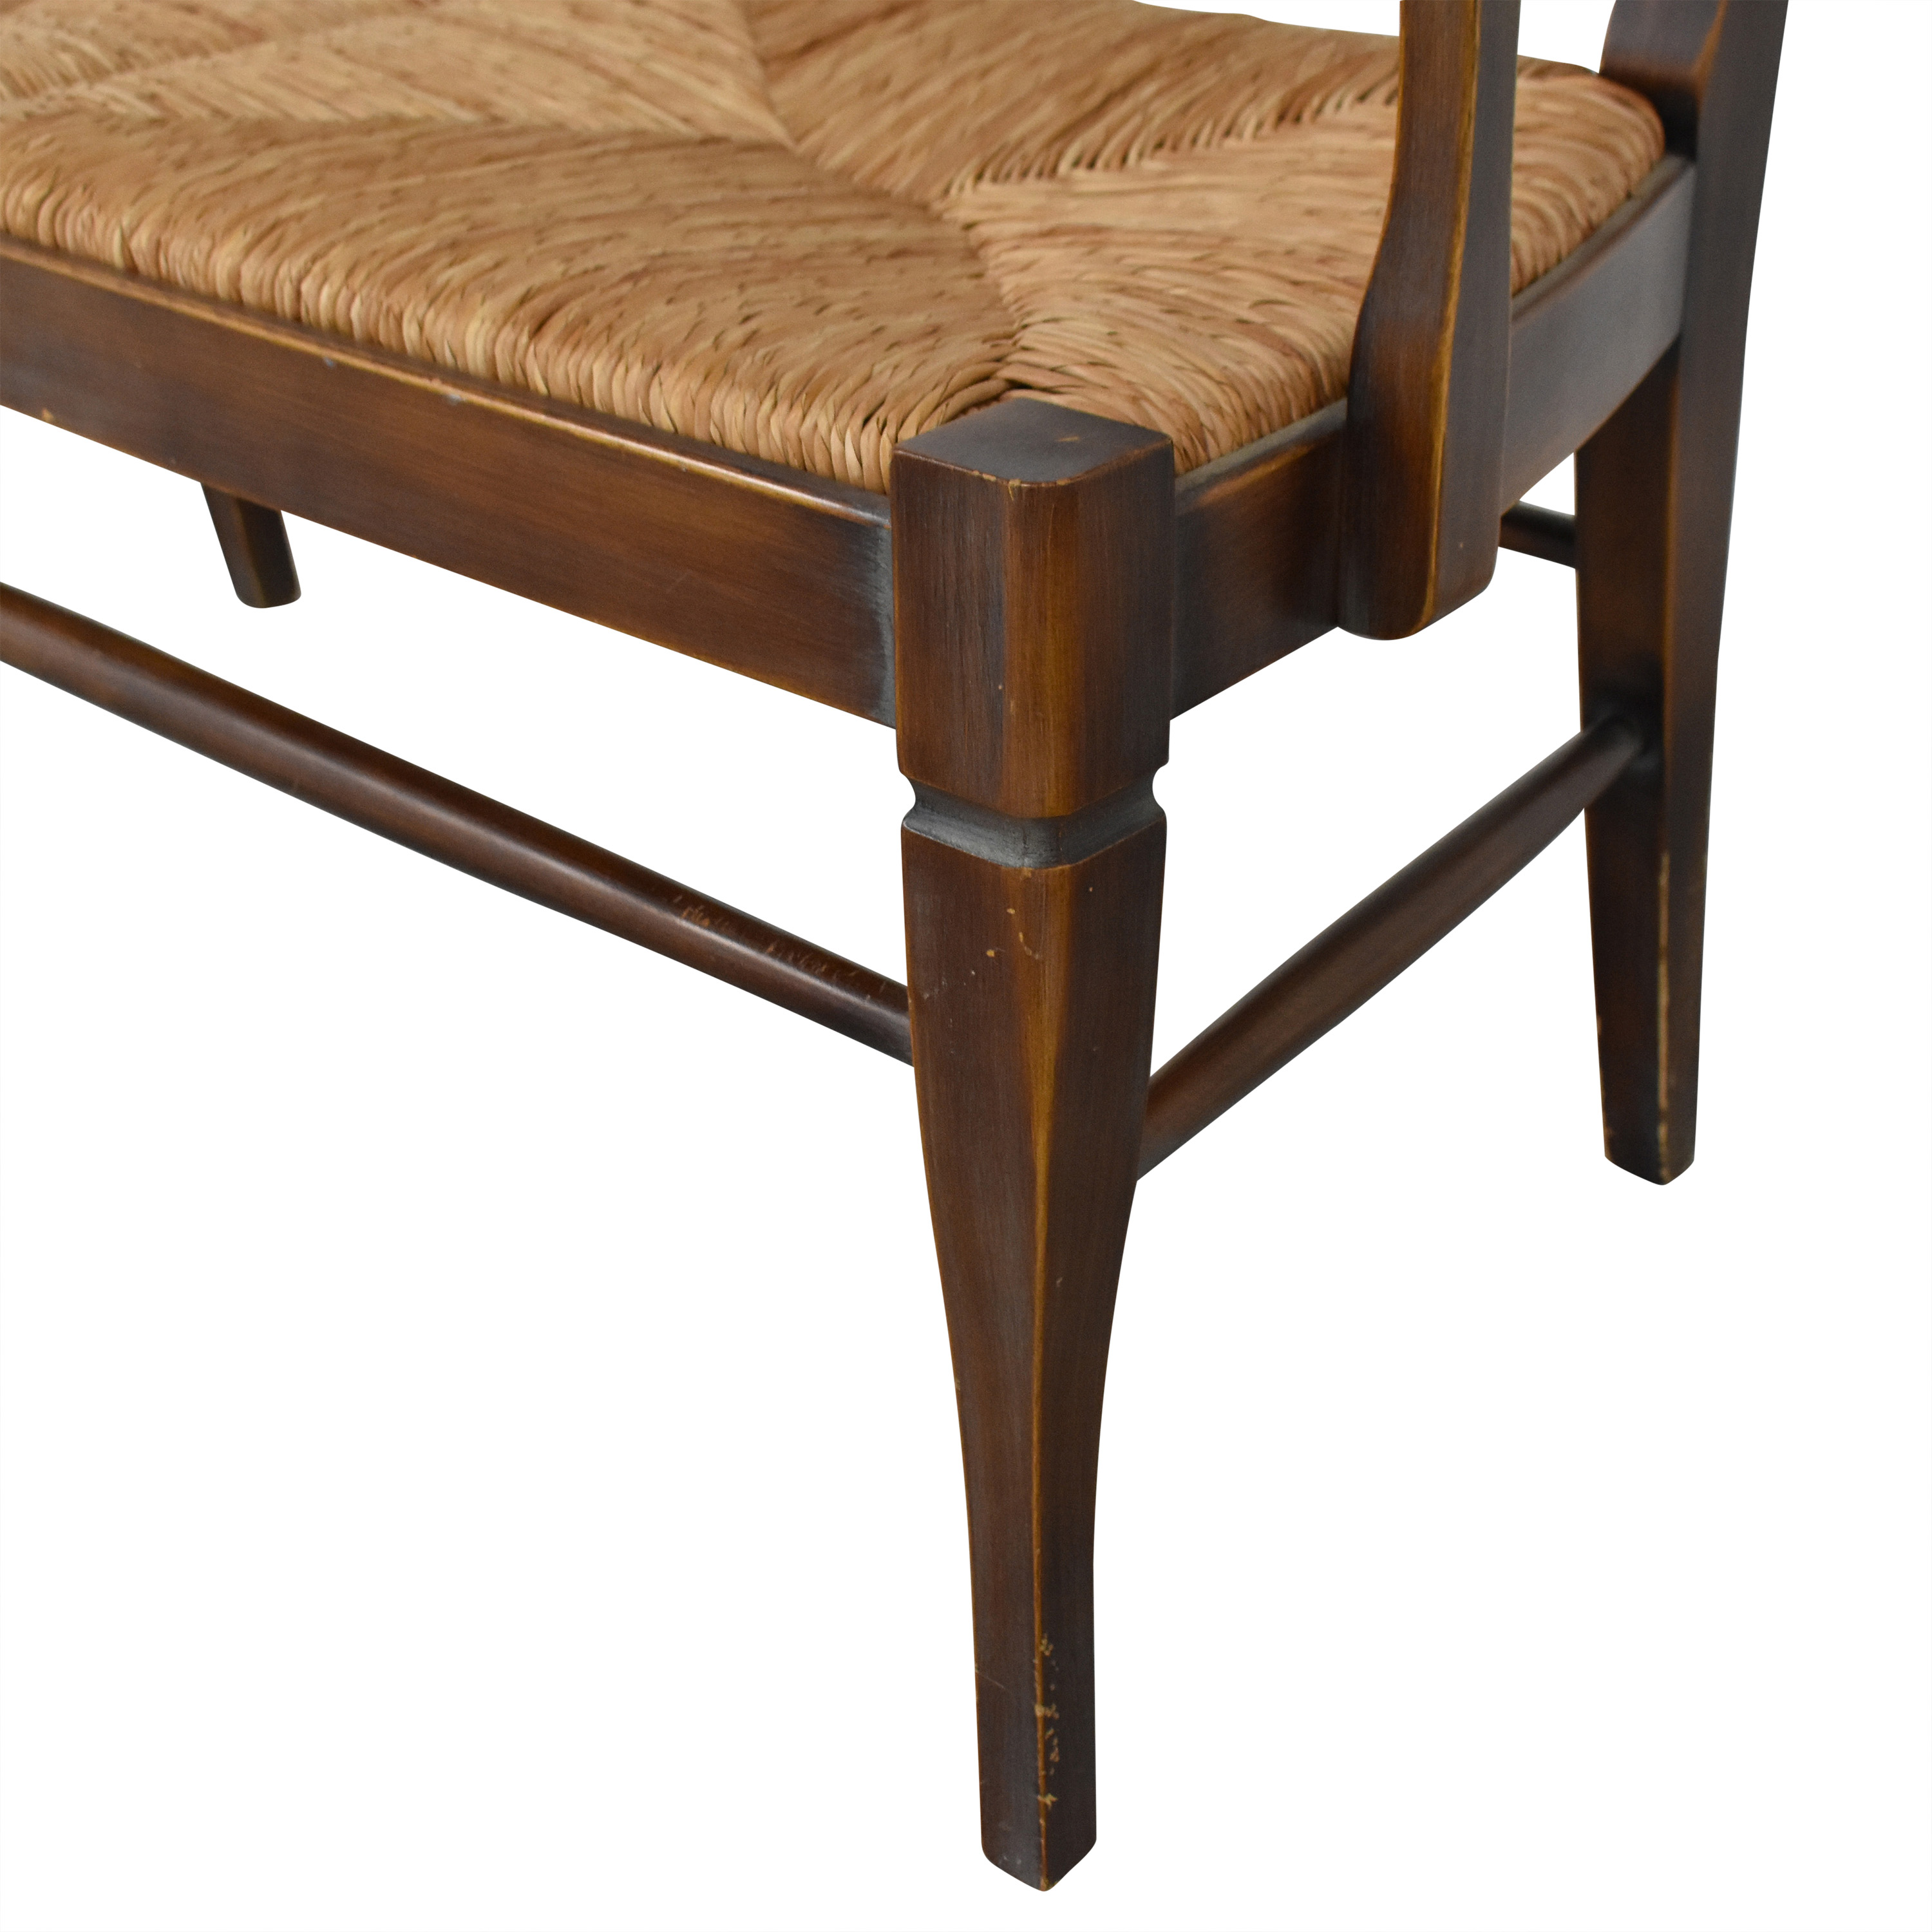 shop Crate & Barrel Rush Seat Bench Crate & Barrel Chairs